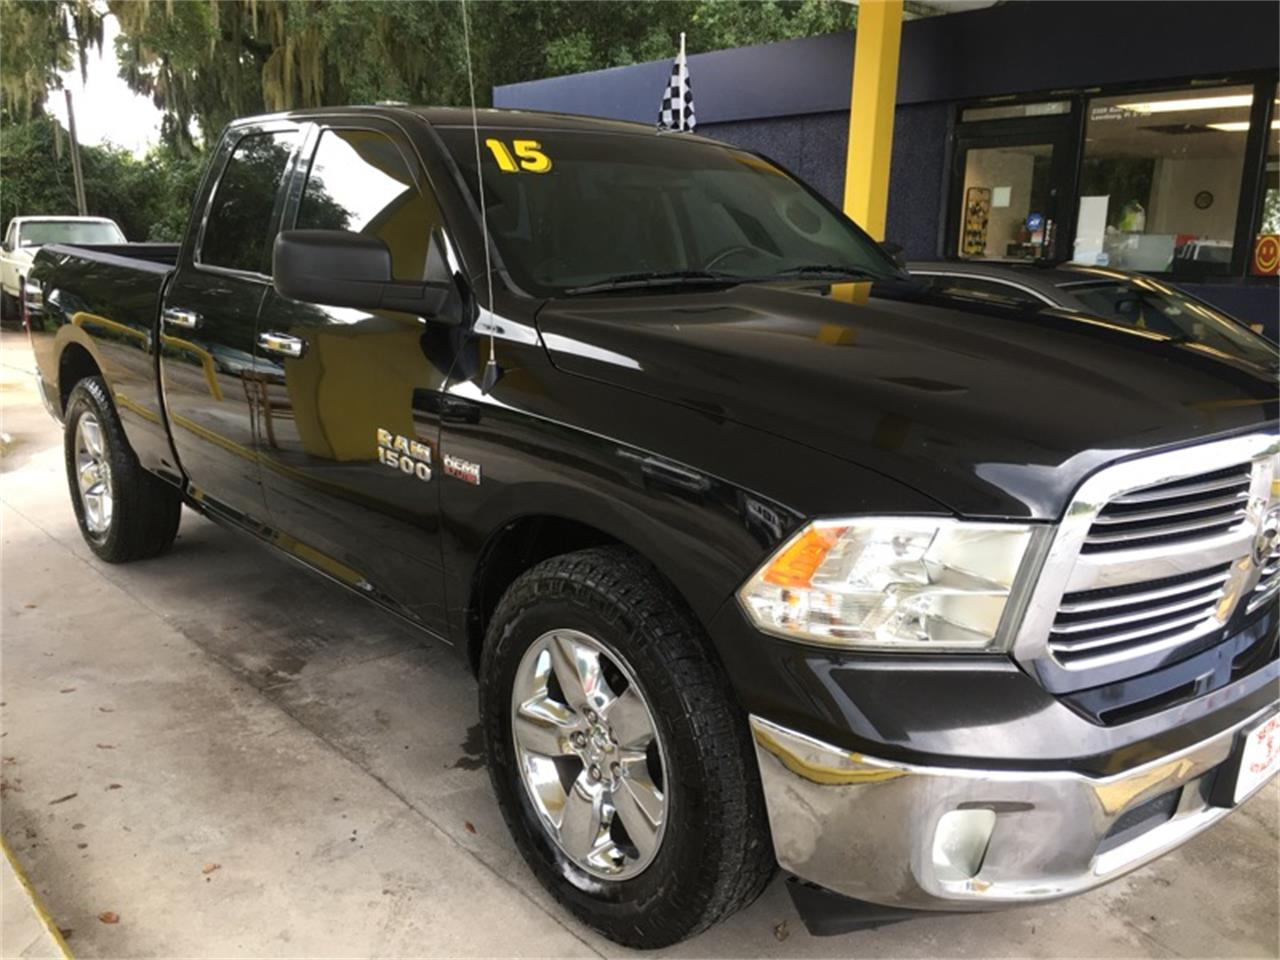 2015 Dodge Ram 1500 (CC-1382394) for sale in Tavares, Florida